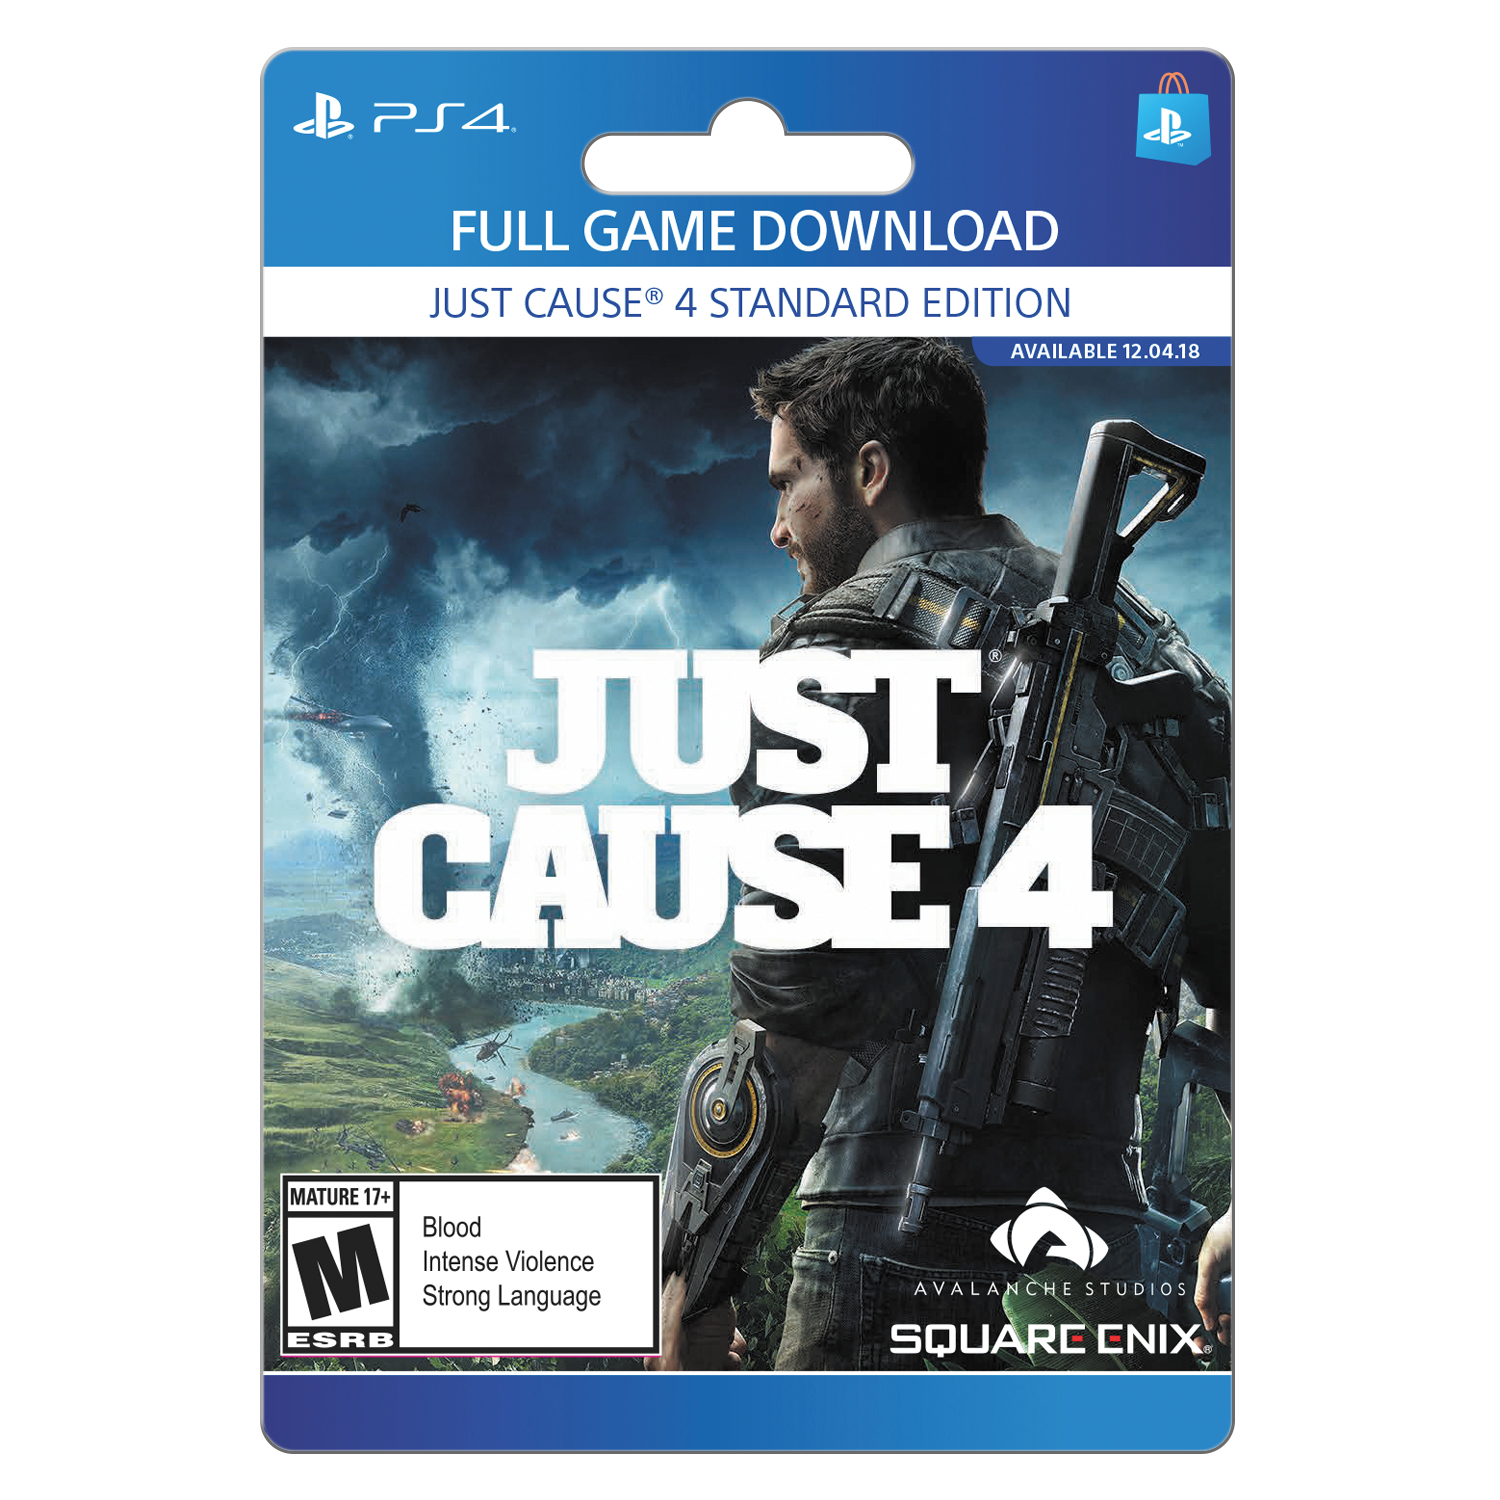 Just Cause 4: Standard Edition, Square Enix, Playstation, [Digital Download]